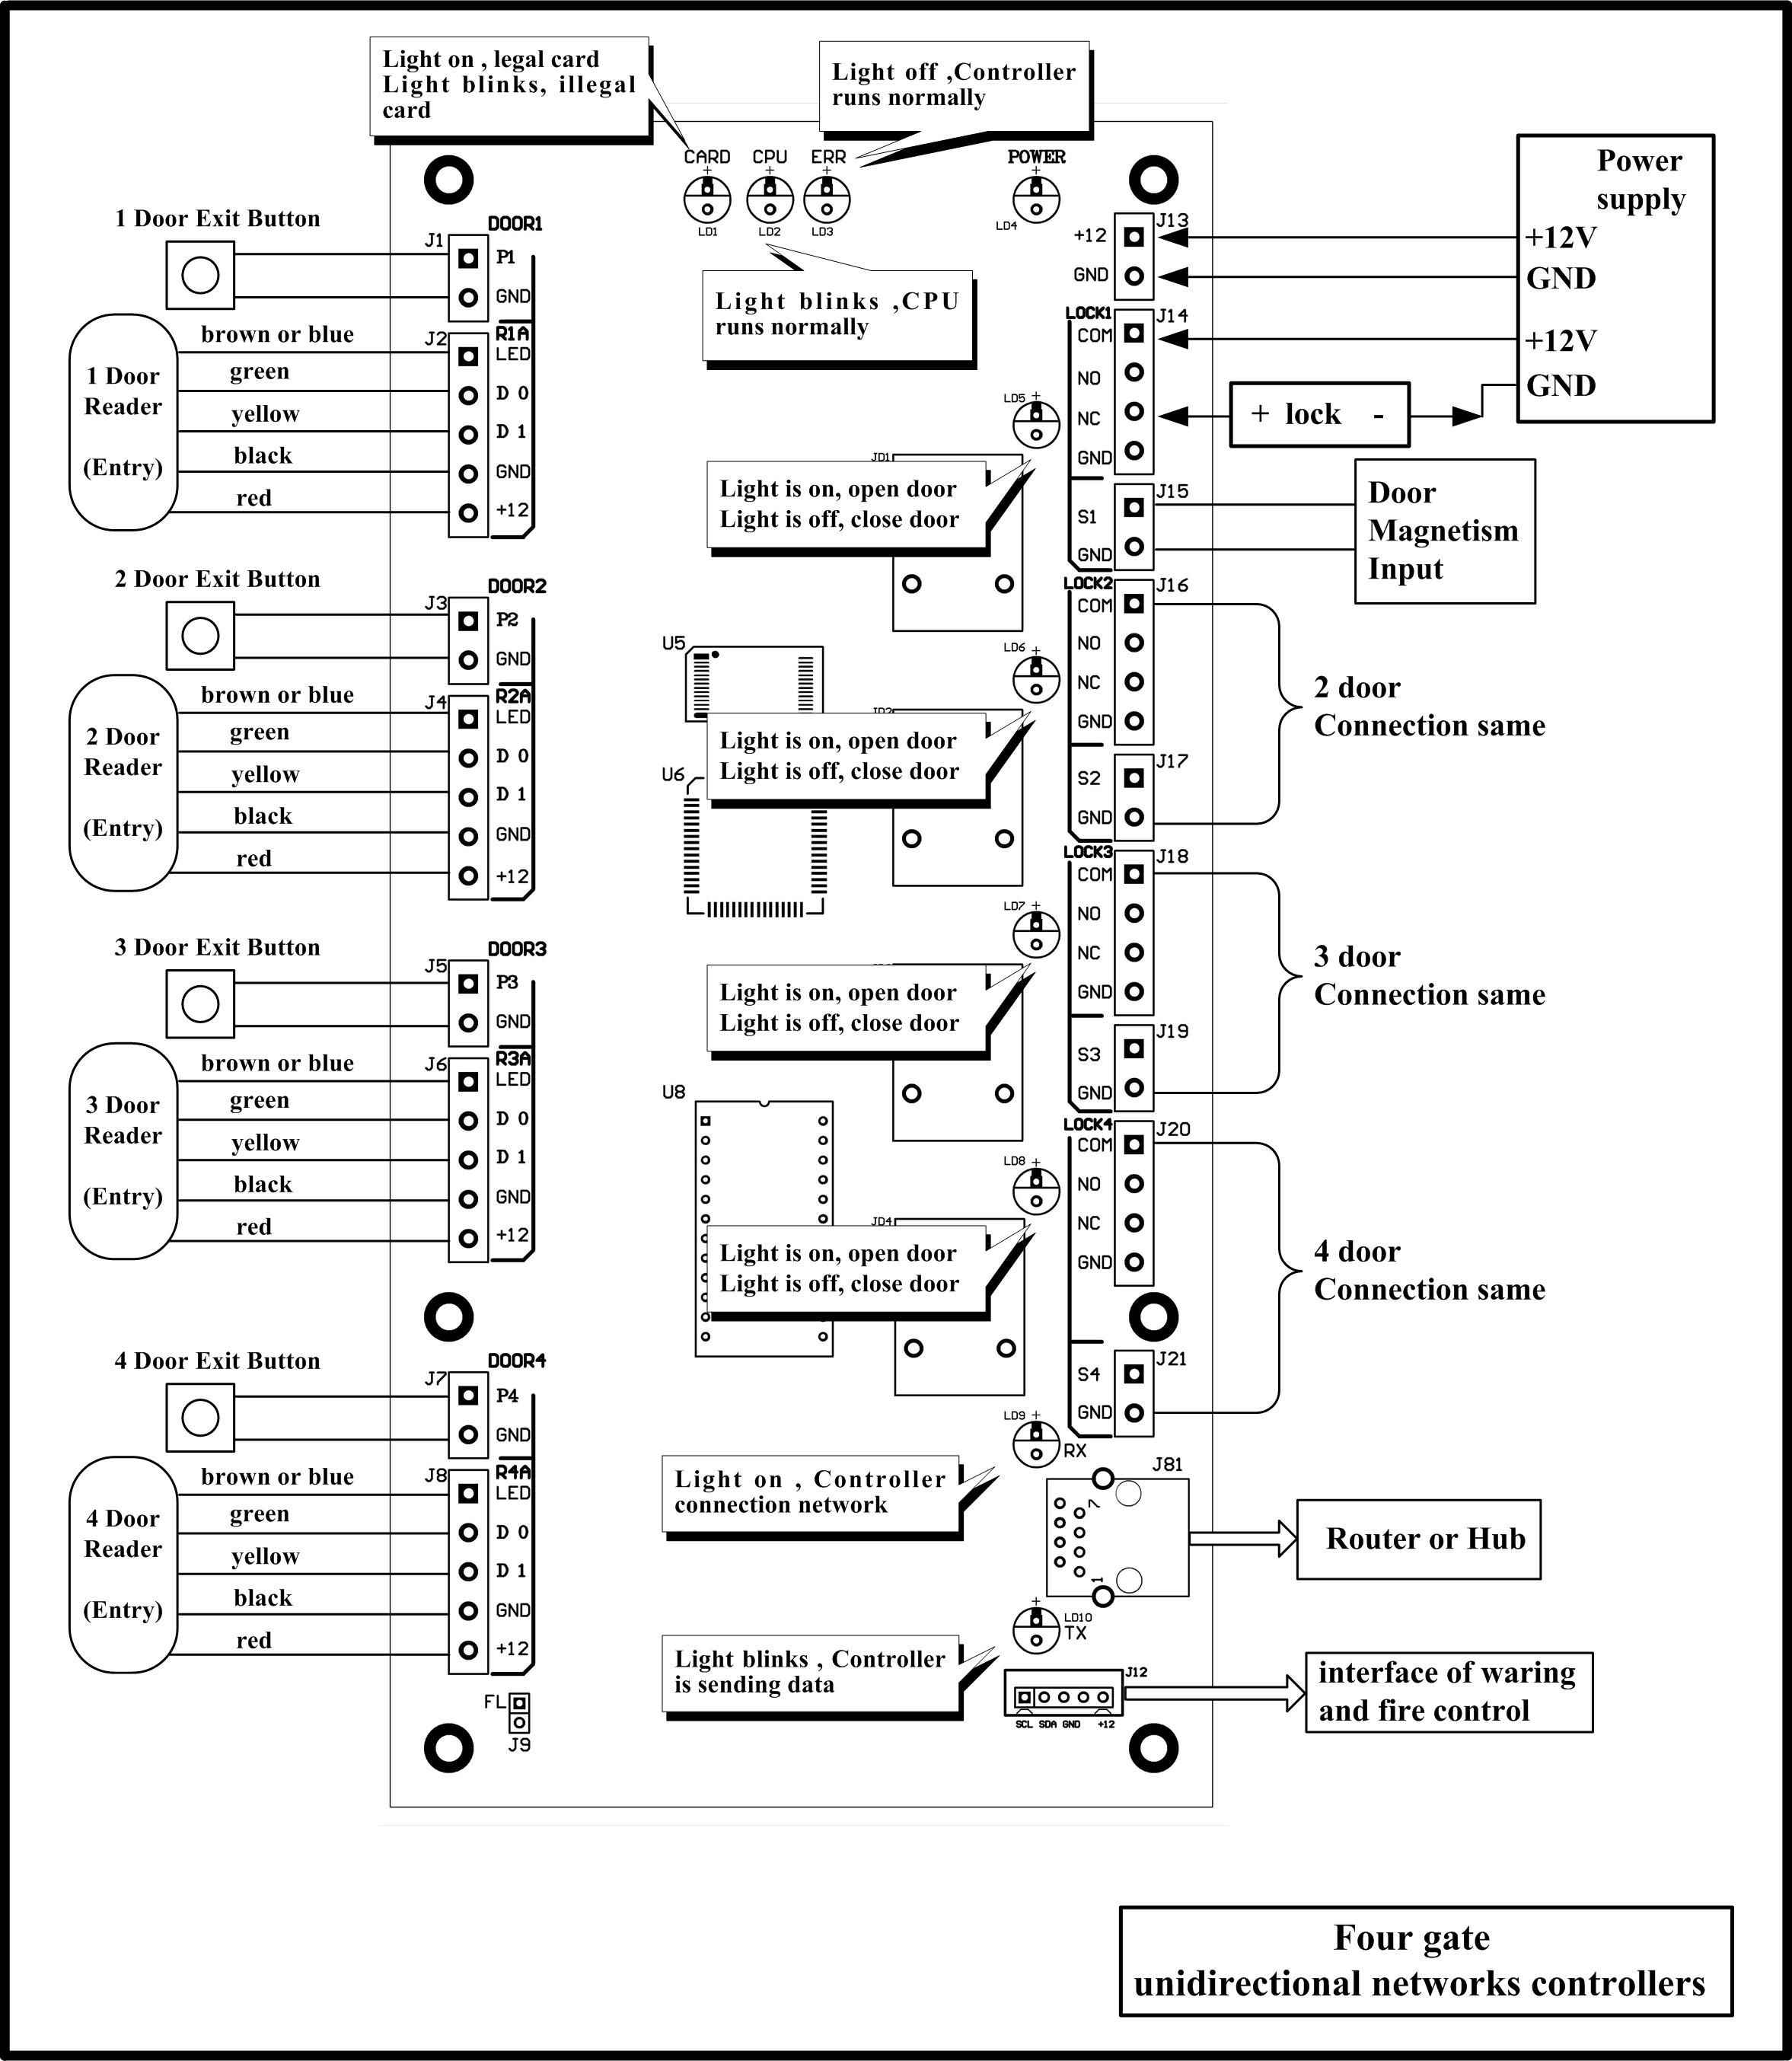 lenel access control wiring diagram Collection-Door Access Control System Wiring Diagram To 531 Bright With Lenel Lenel 2220 Wiring Diagram 3-h